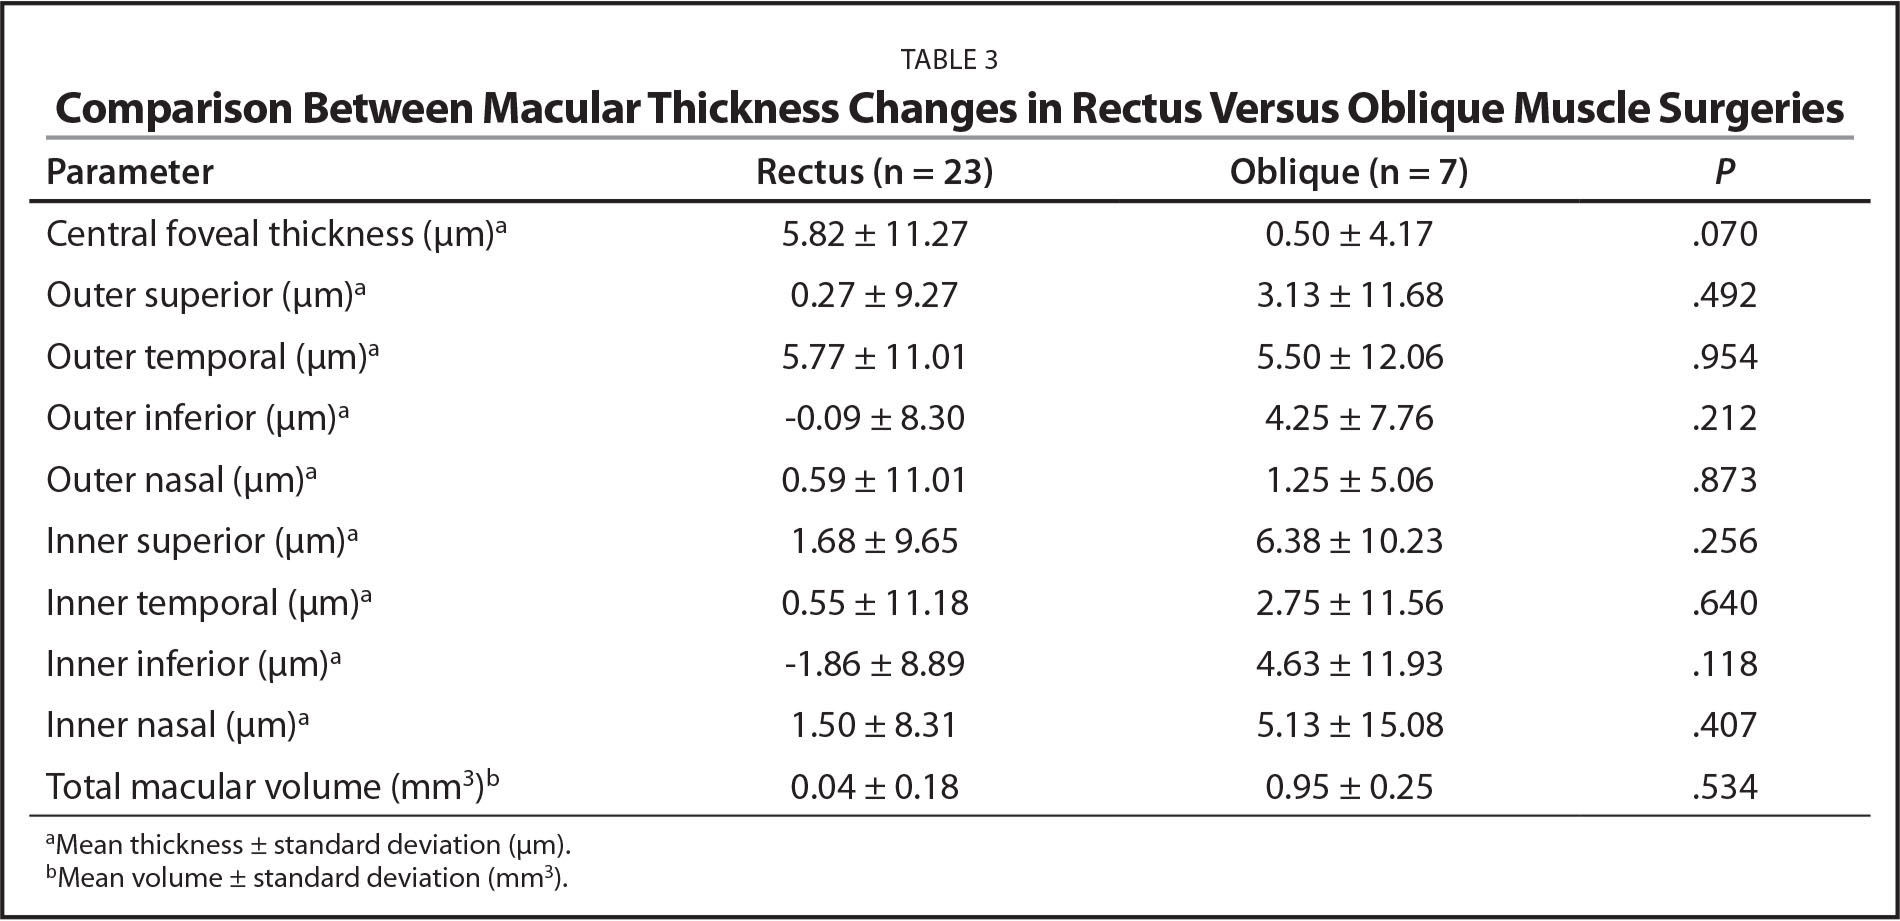 Comparison Between Macular Thickness Changes in Rectus Versus Oblique Muscle Surgeries